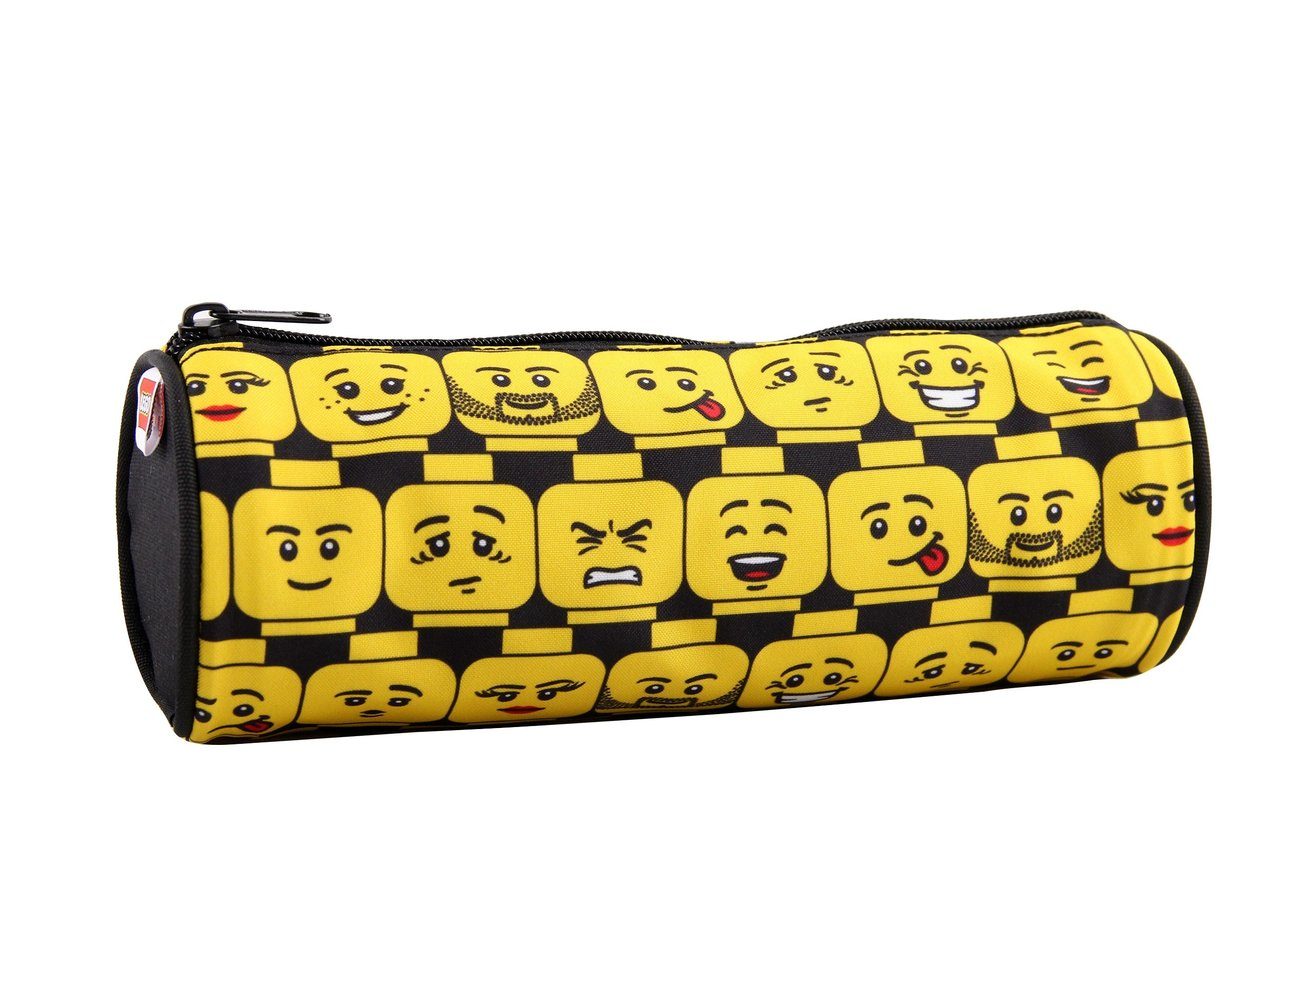 Minifigure Pencil Roll